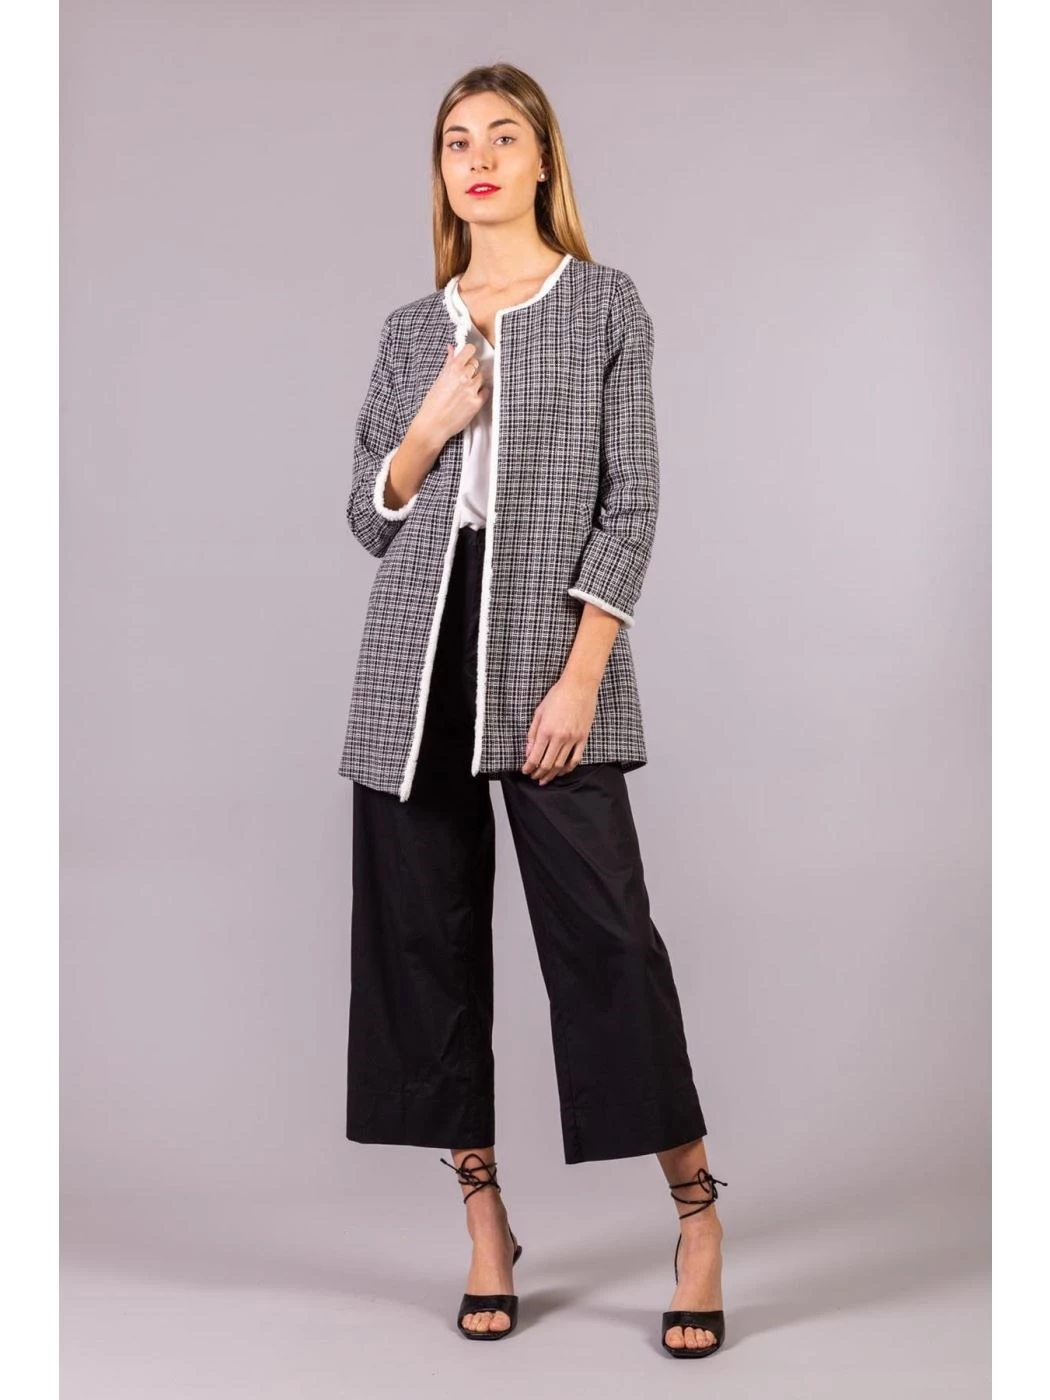 TWEED DUSTER AND COMFORTABLE POCKETS